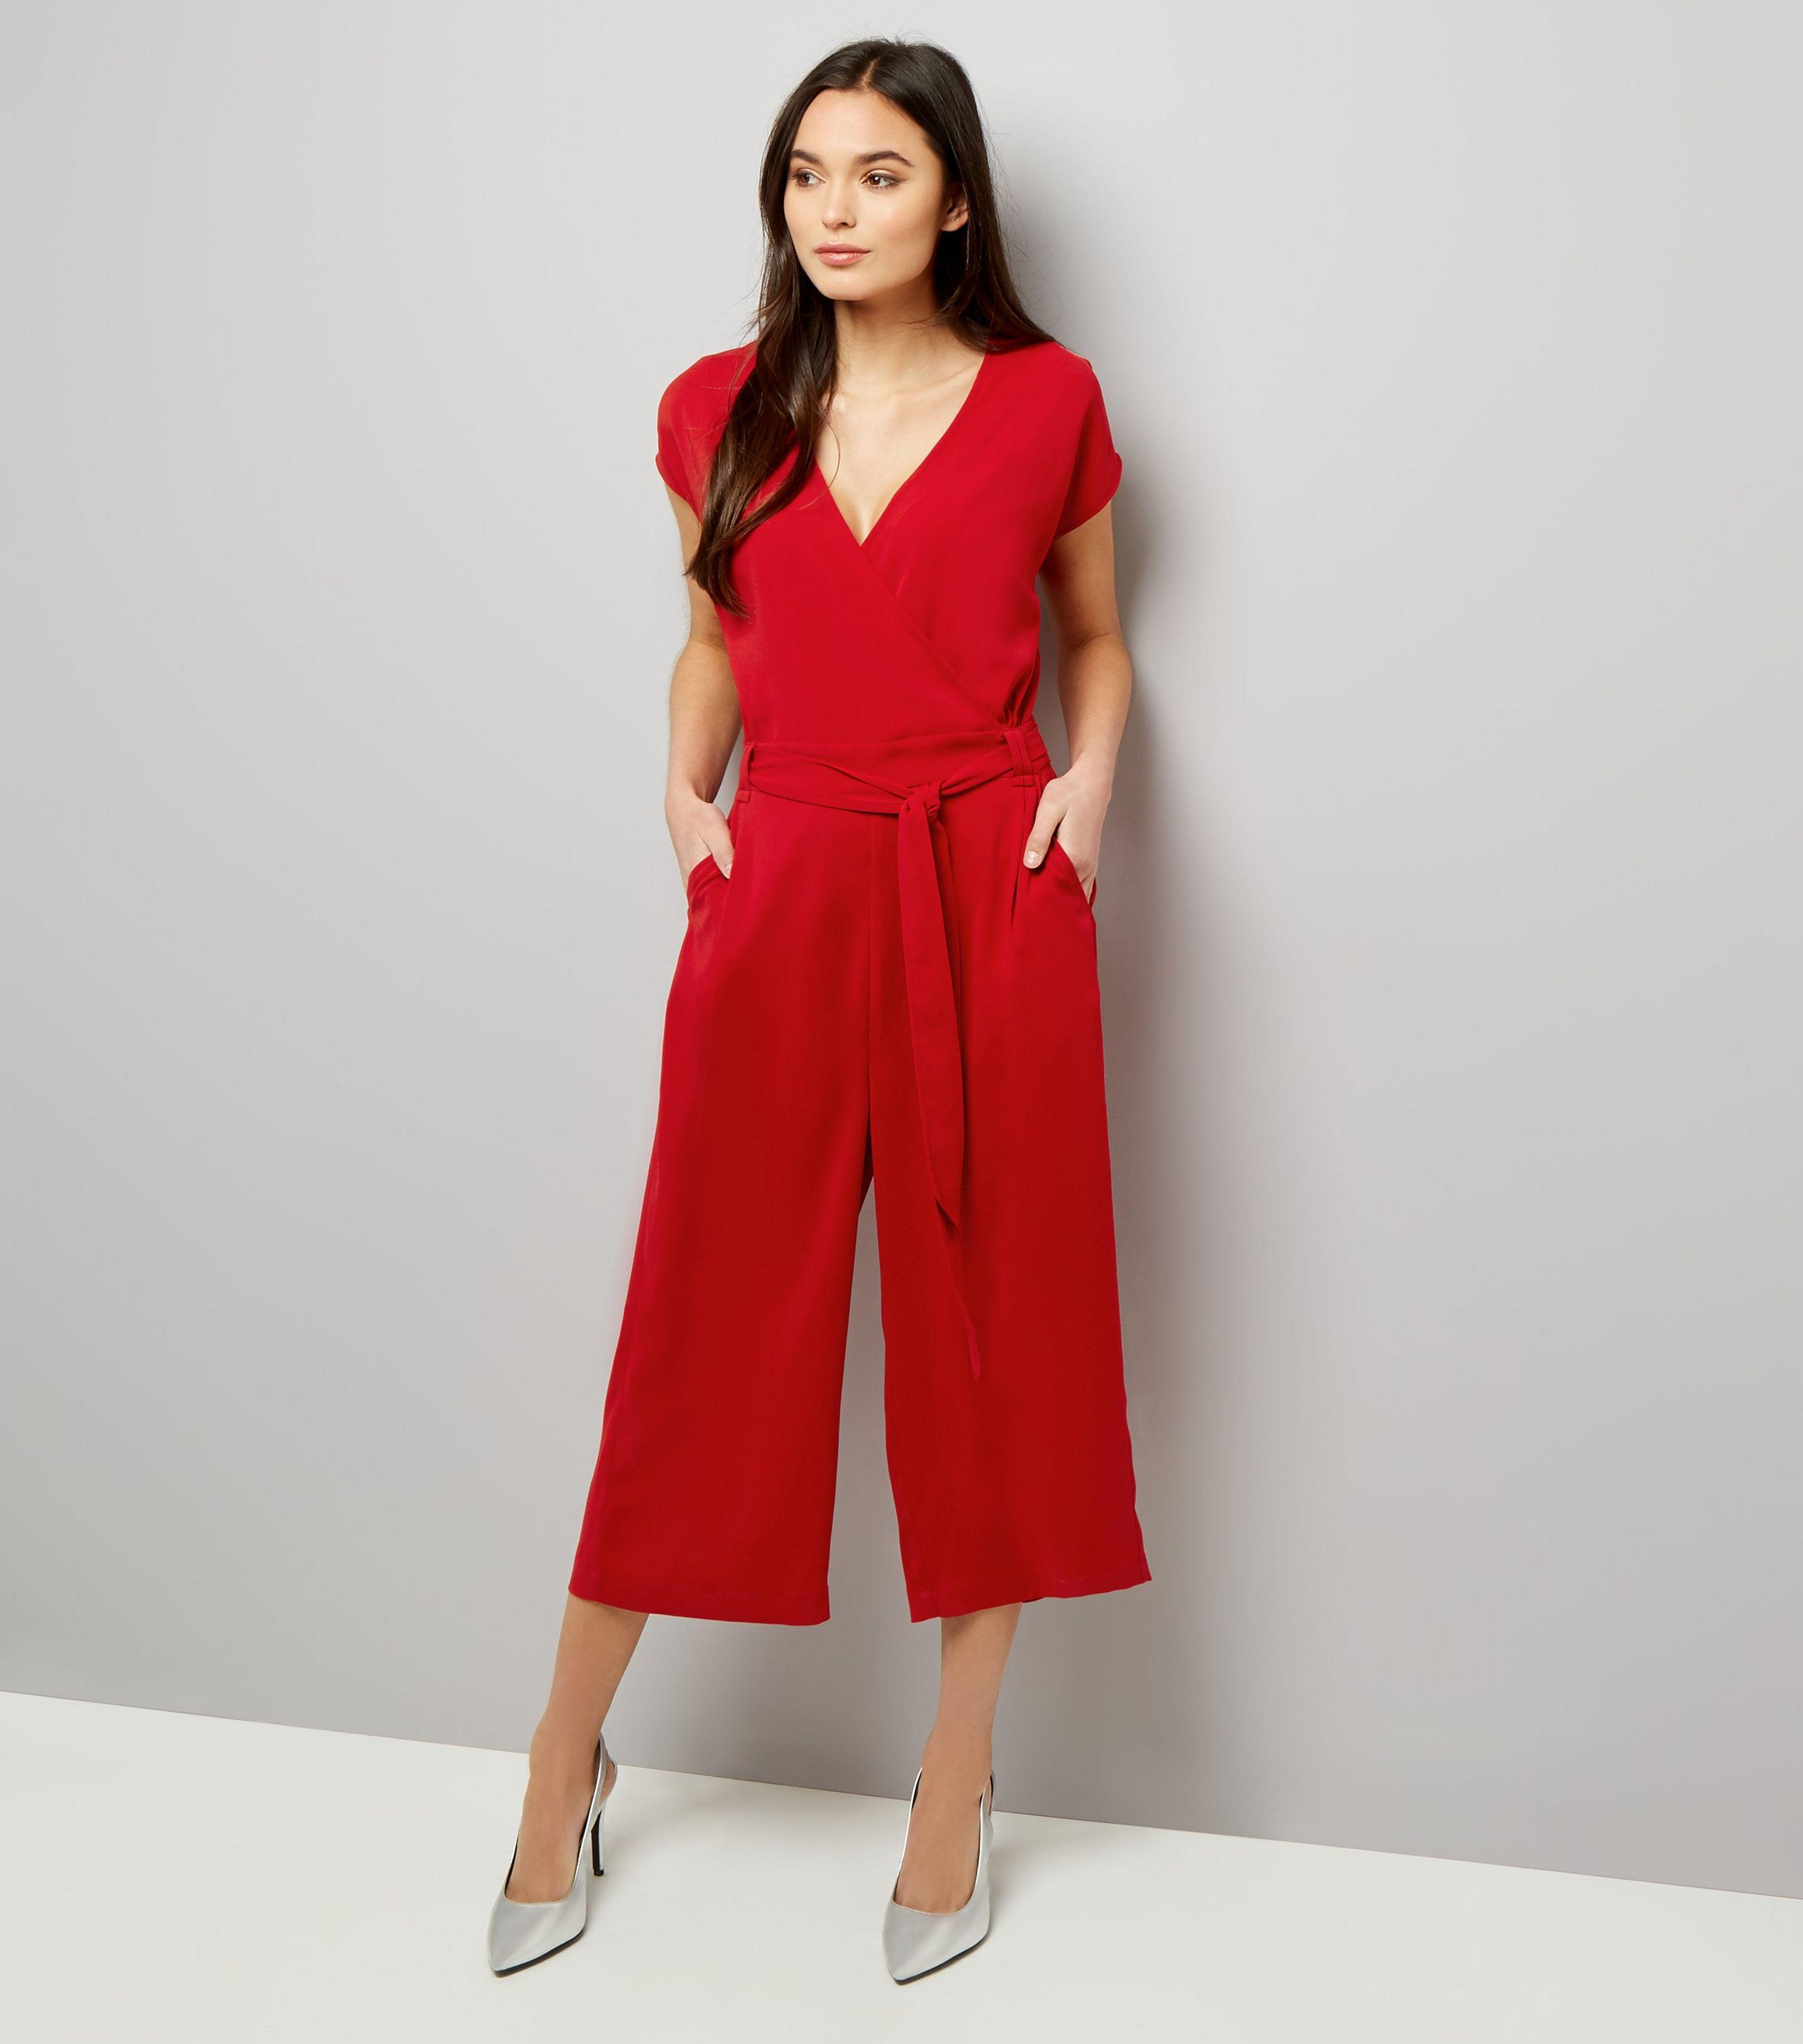 c9e5114e748d New Look Red Plissé Wrap Front Culotte Jumpsuit in Red - Lyst